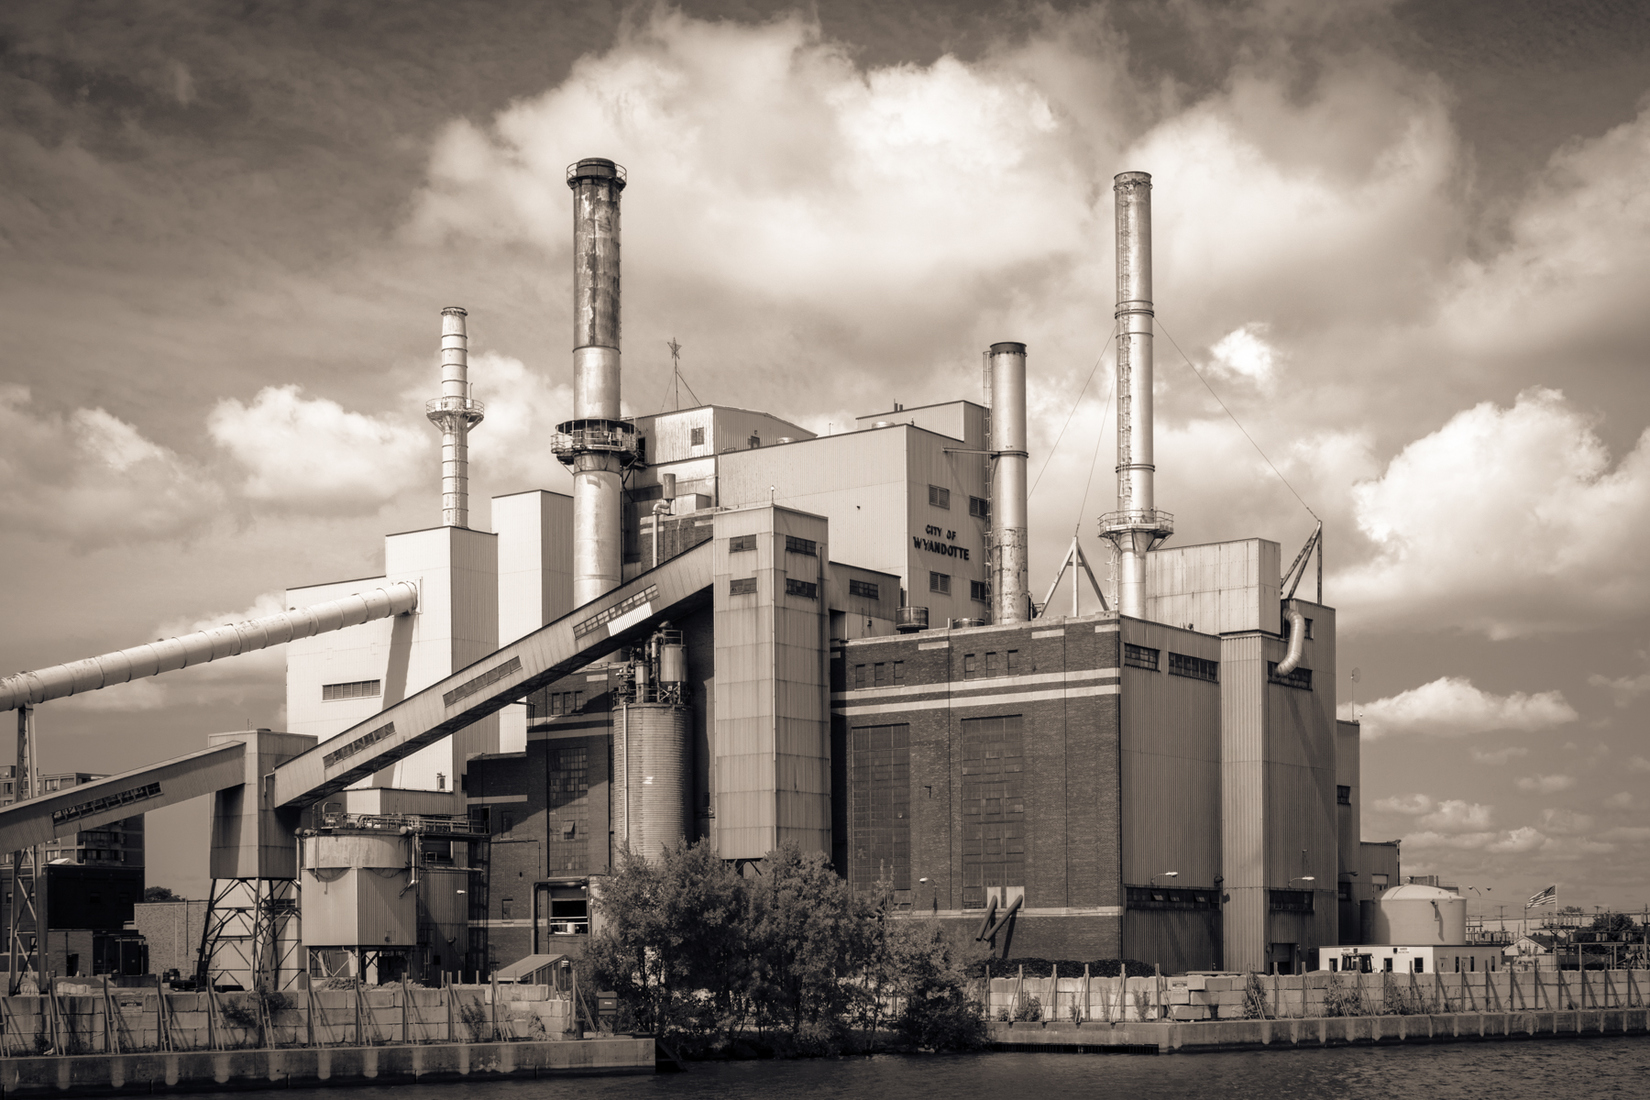 Industrial Wyandotte Power - Homage to Charles Sheeler